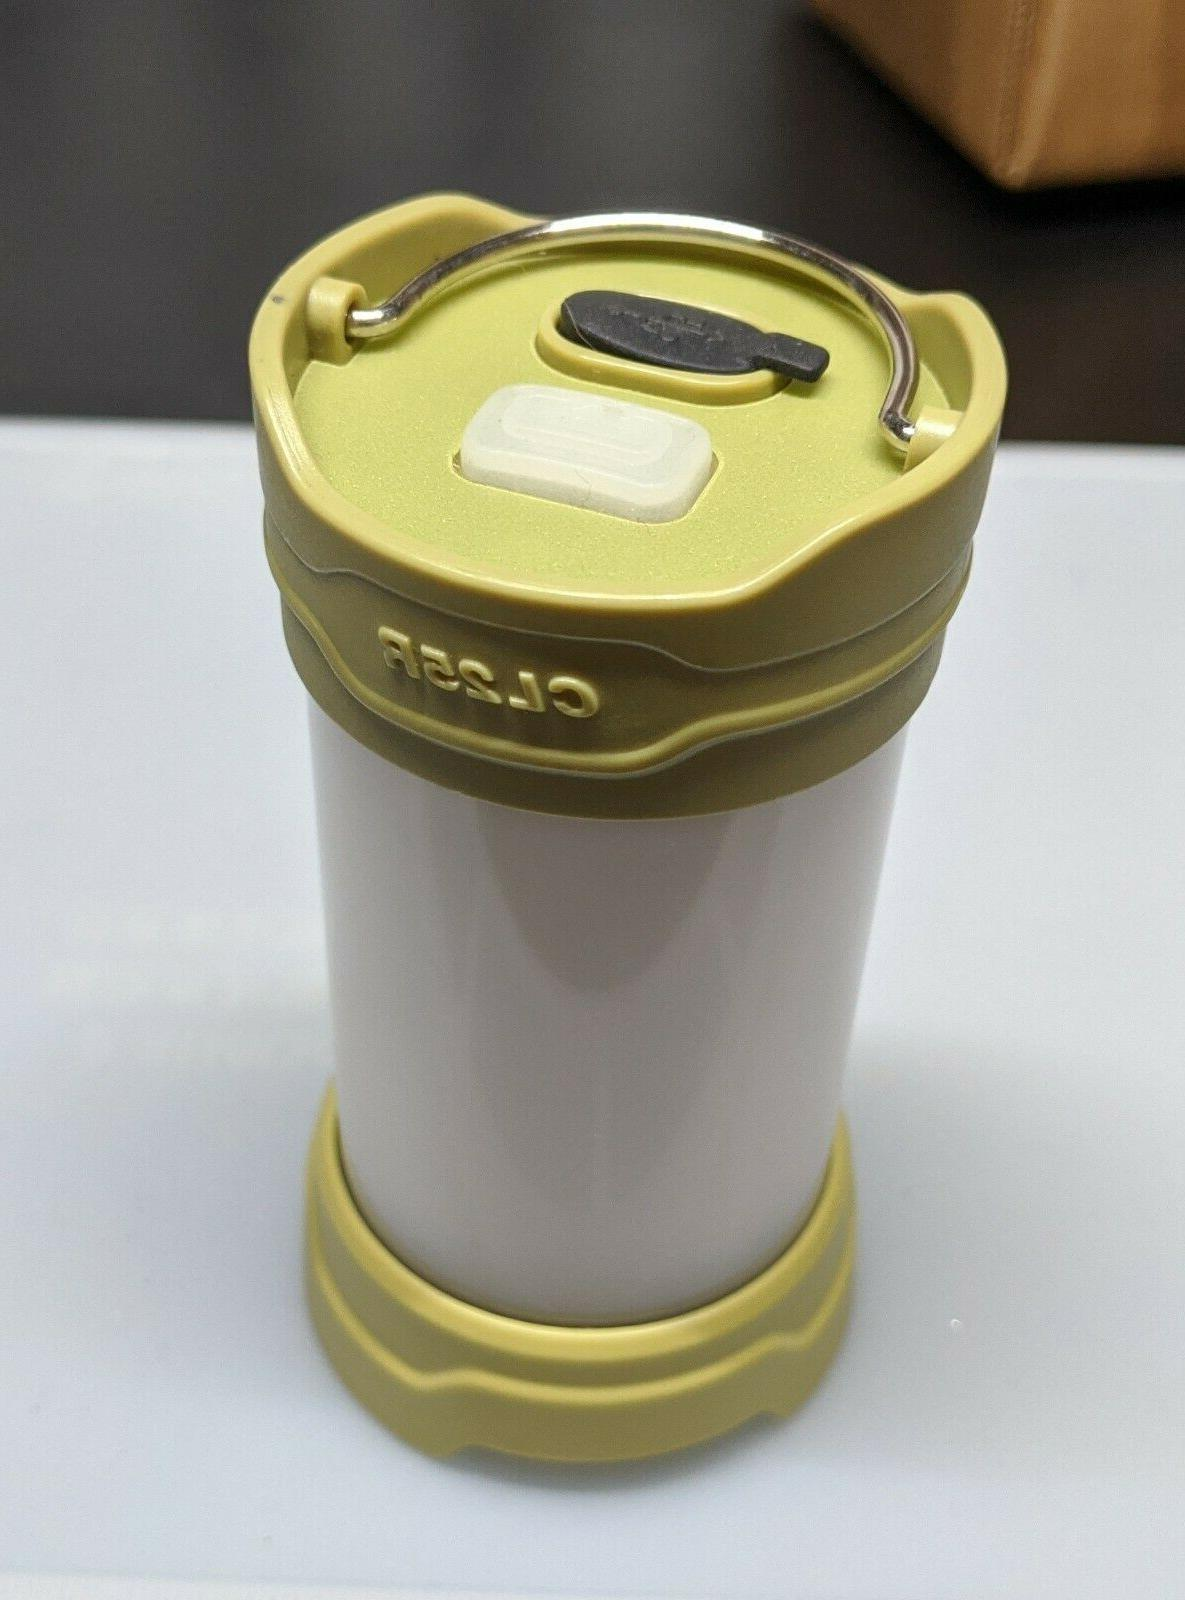 cl25r white and red led camping lantern